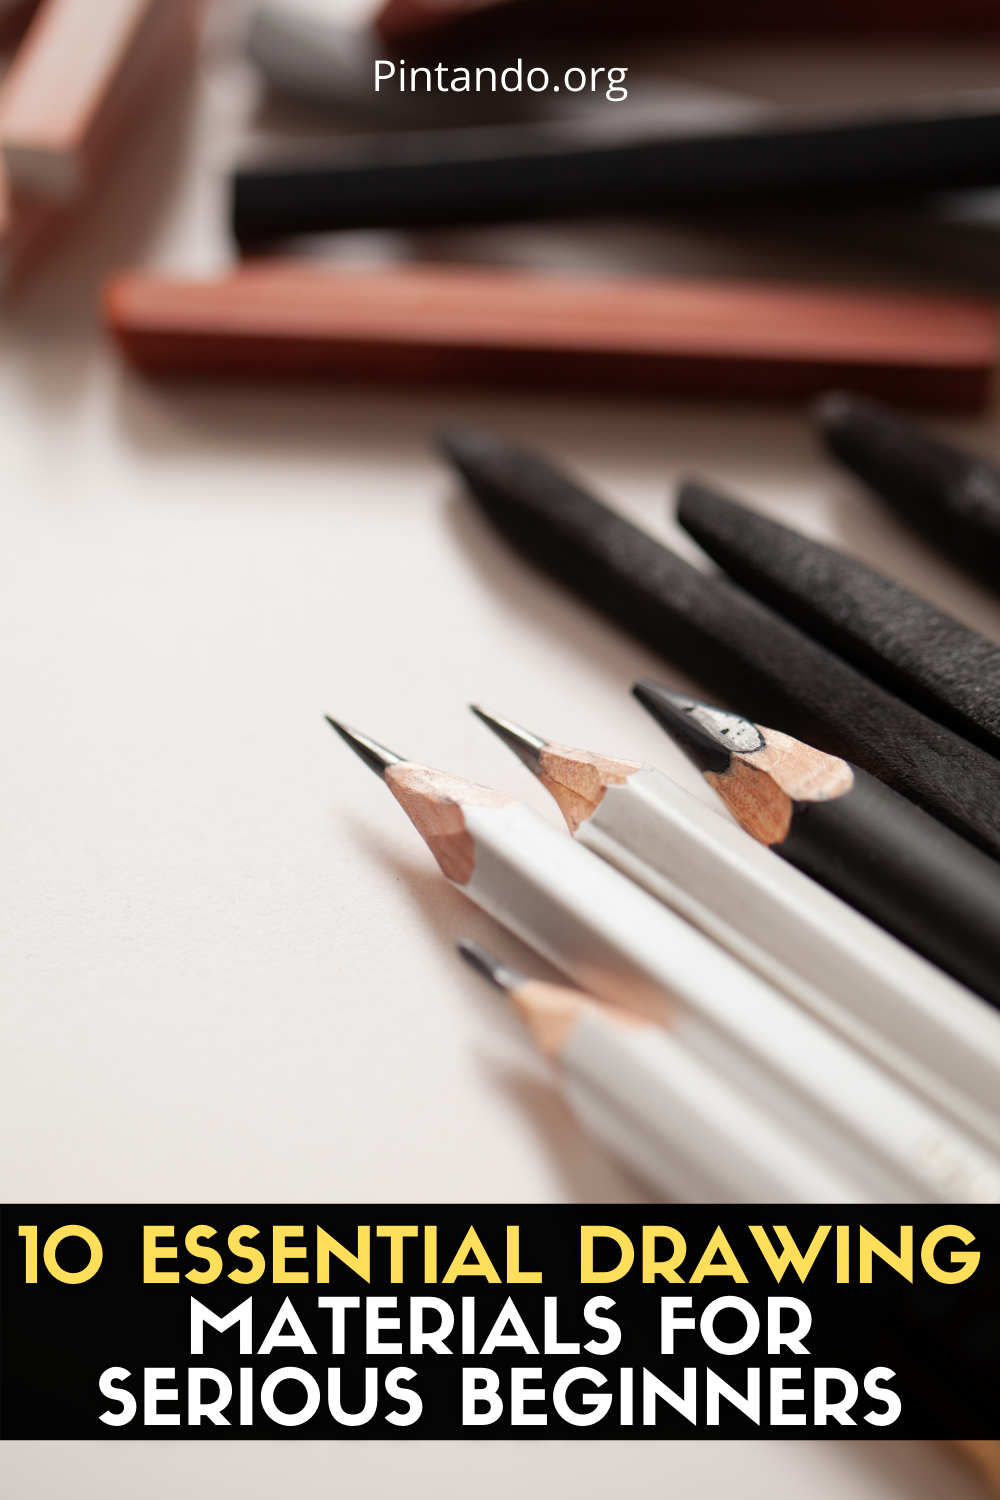 10 ESSENTIAL DRAWING MATERIALS FOR SERIOUS BEGINNERS